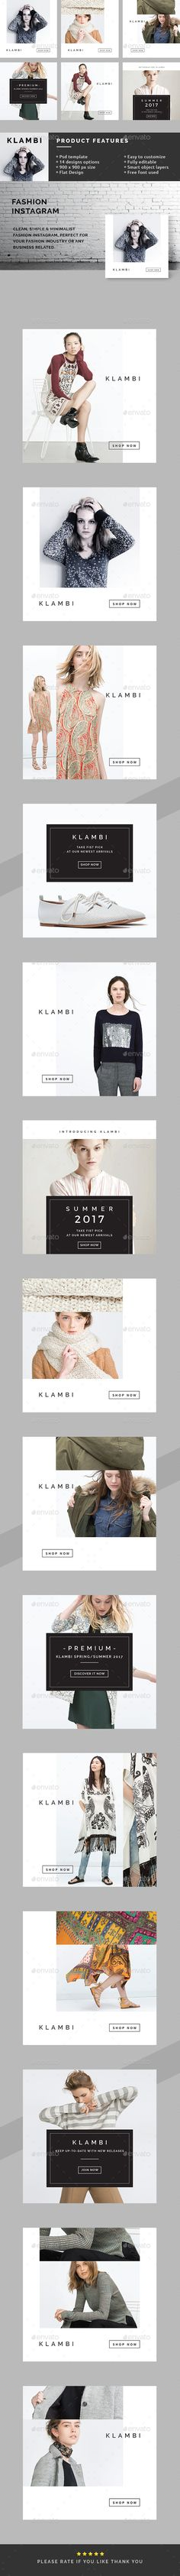 Fashion Instagram Banners - PSD Template • Only available here ➝ http://graphicriver.net/item/fashion-instagram-banners/16901991?ref=pxcr